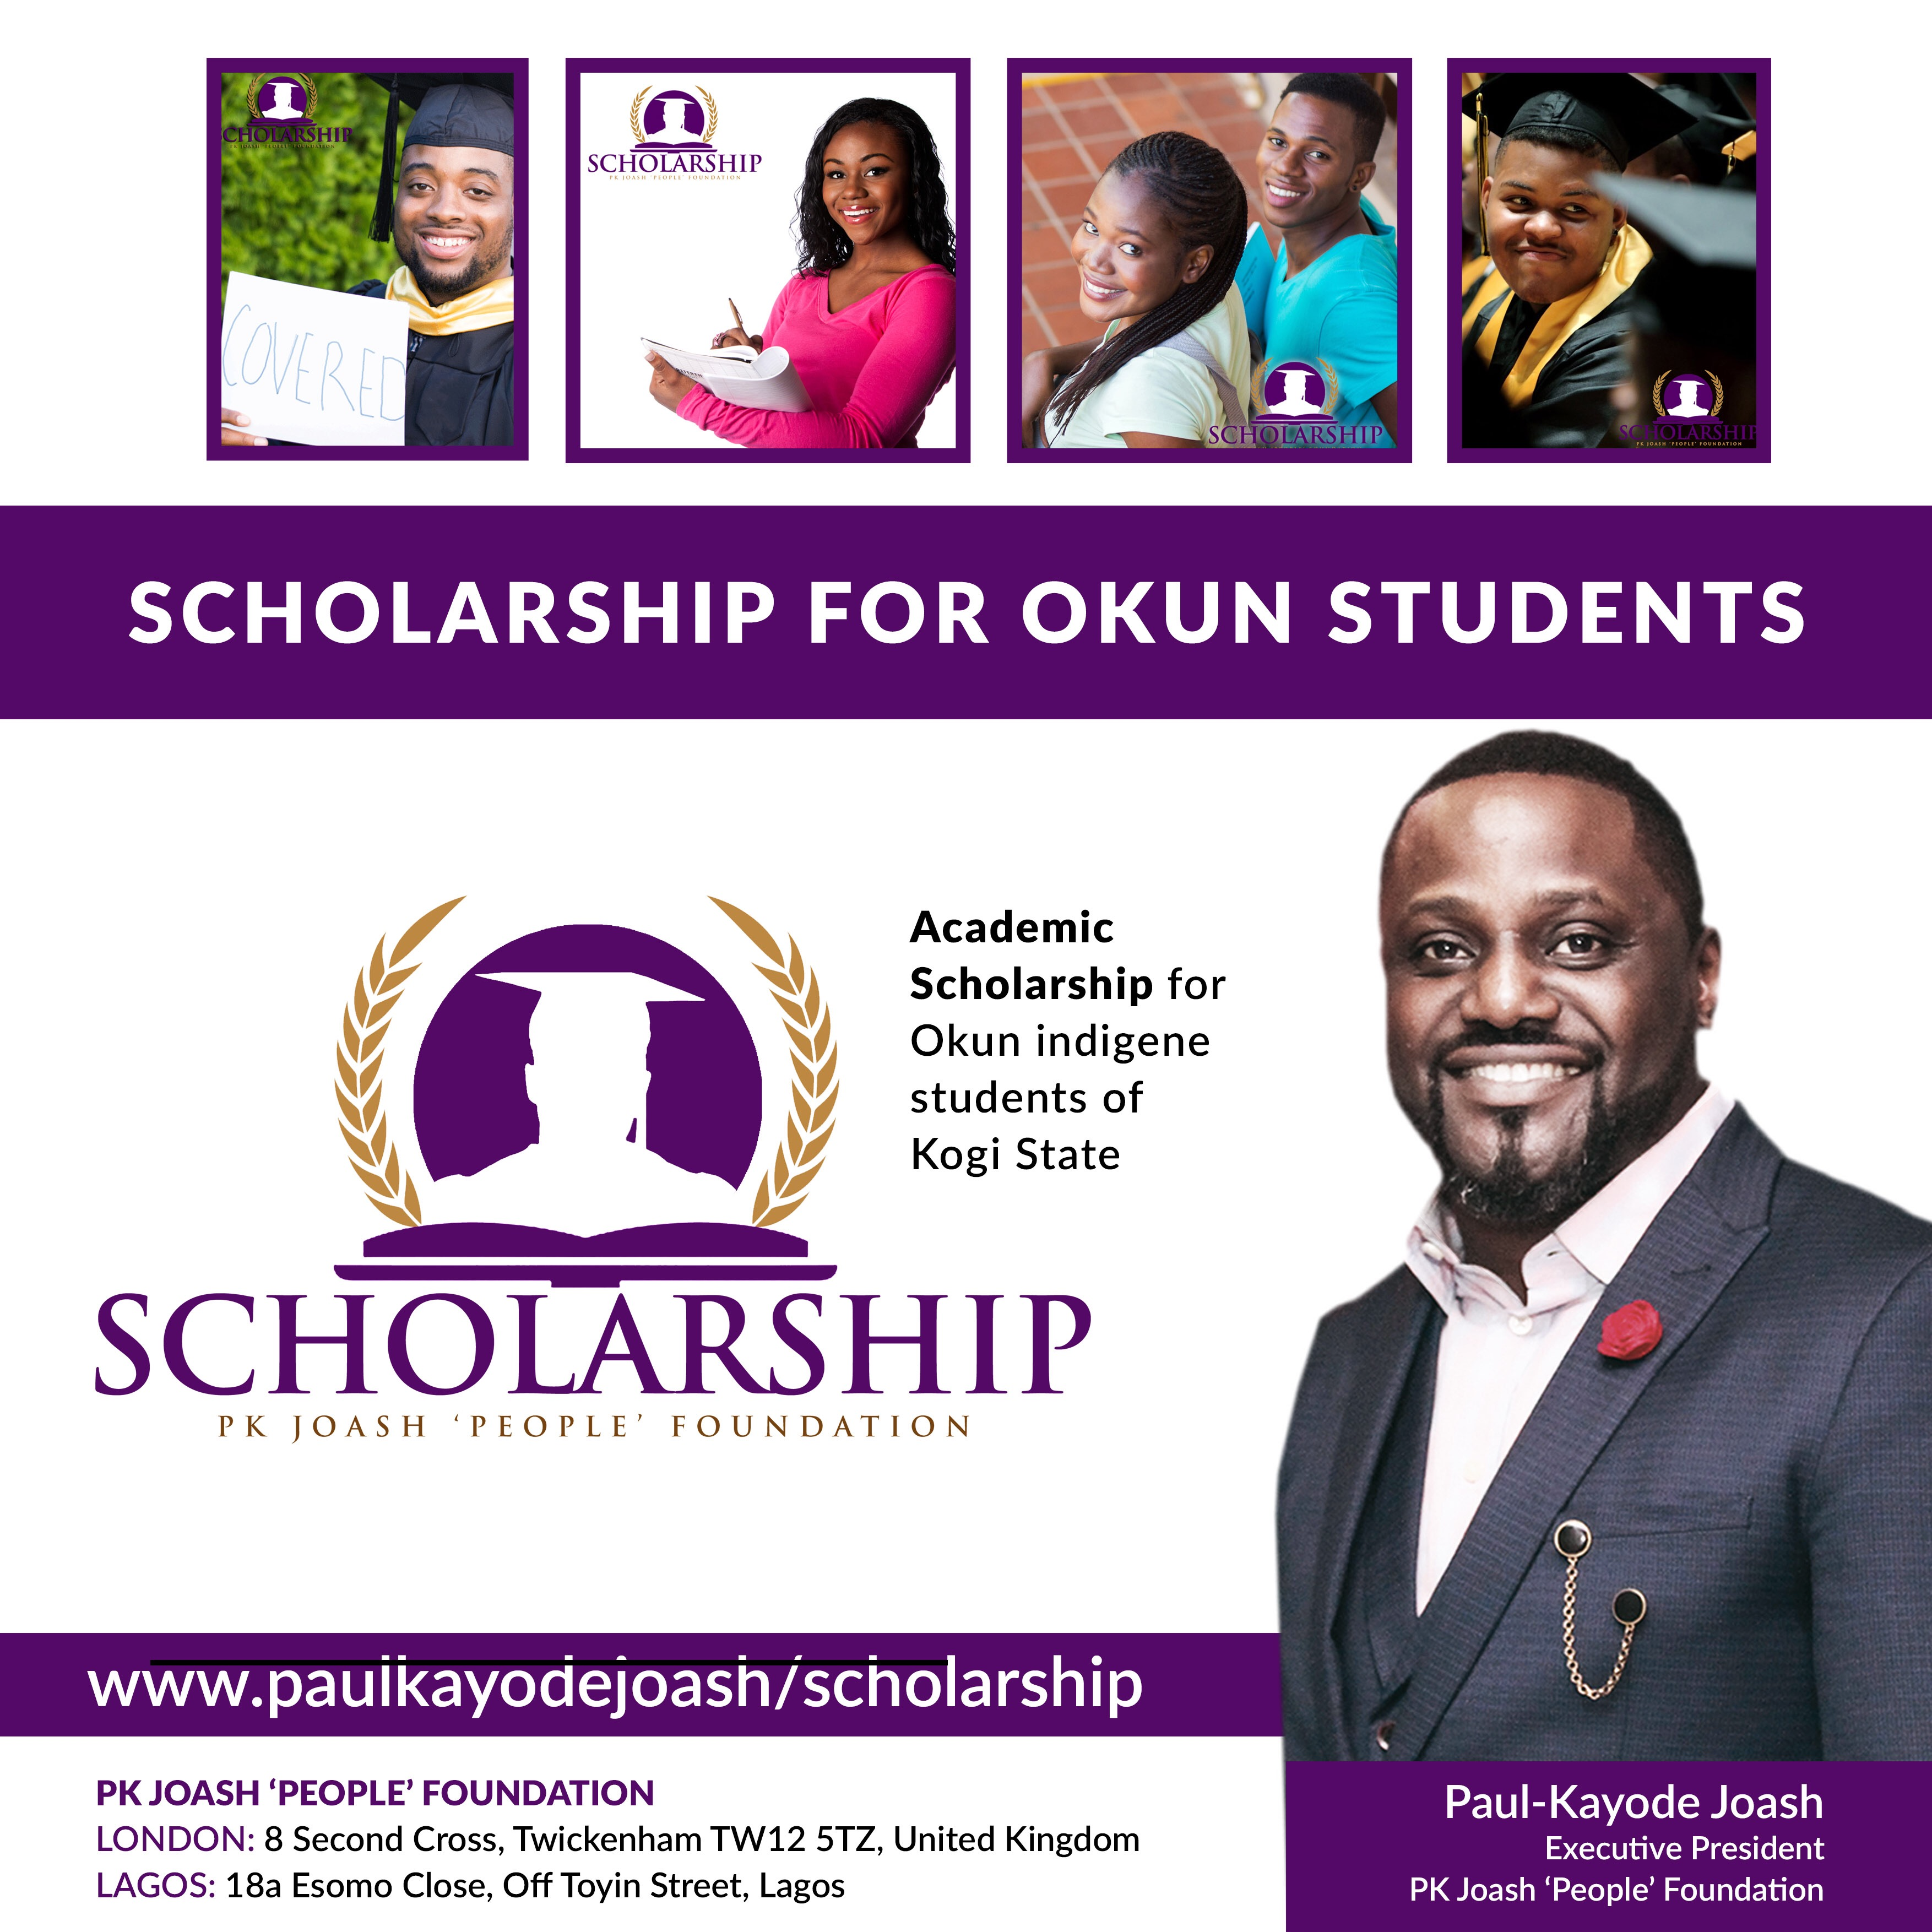 242 Okun Students Selected For Academic Scholarship Screening By PK Joash 'People' Foundation